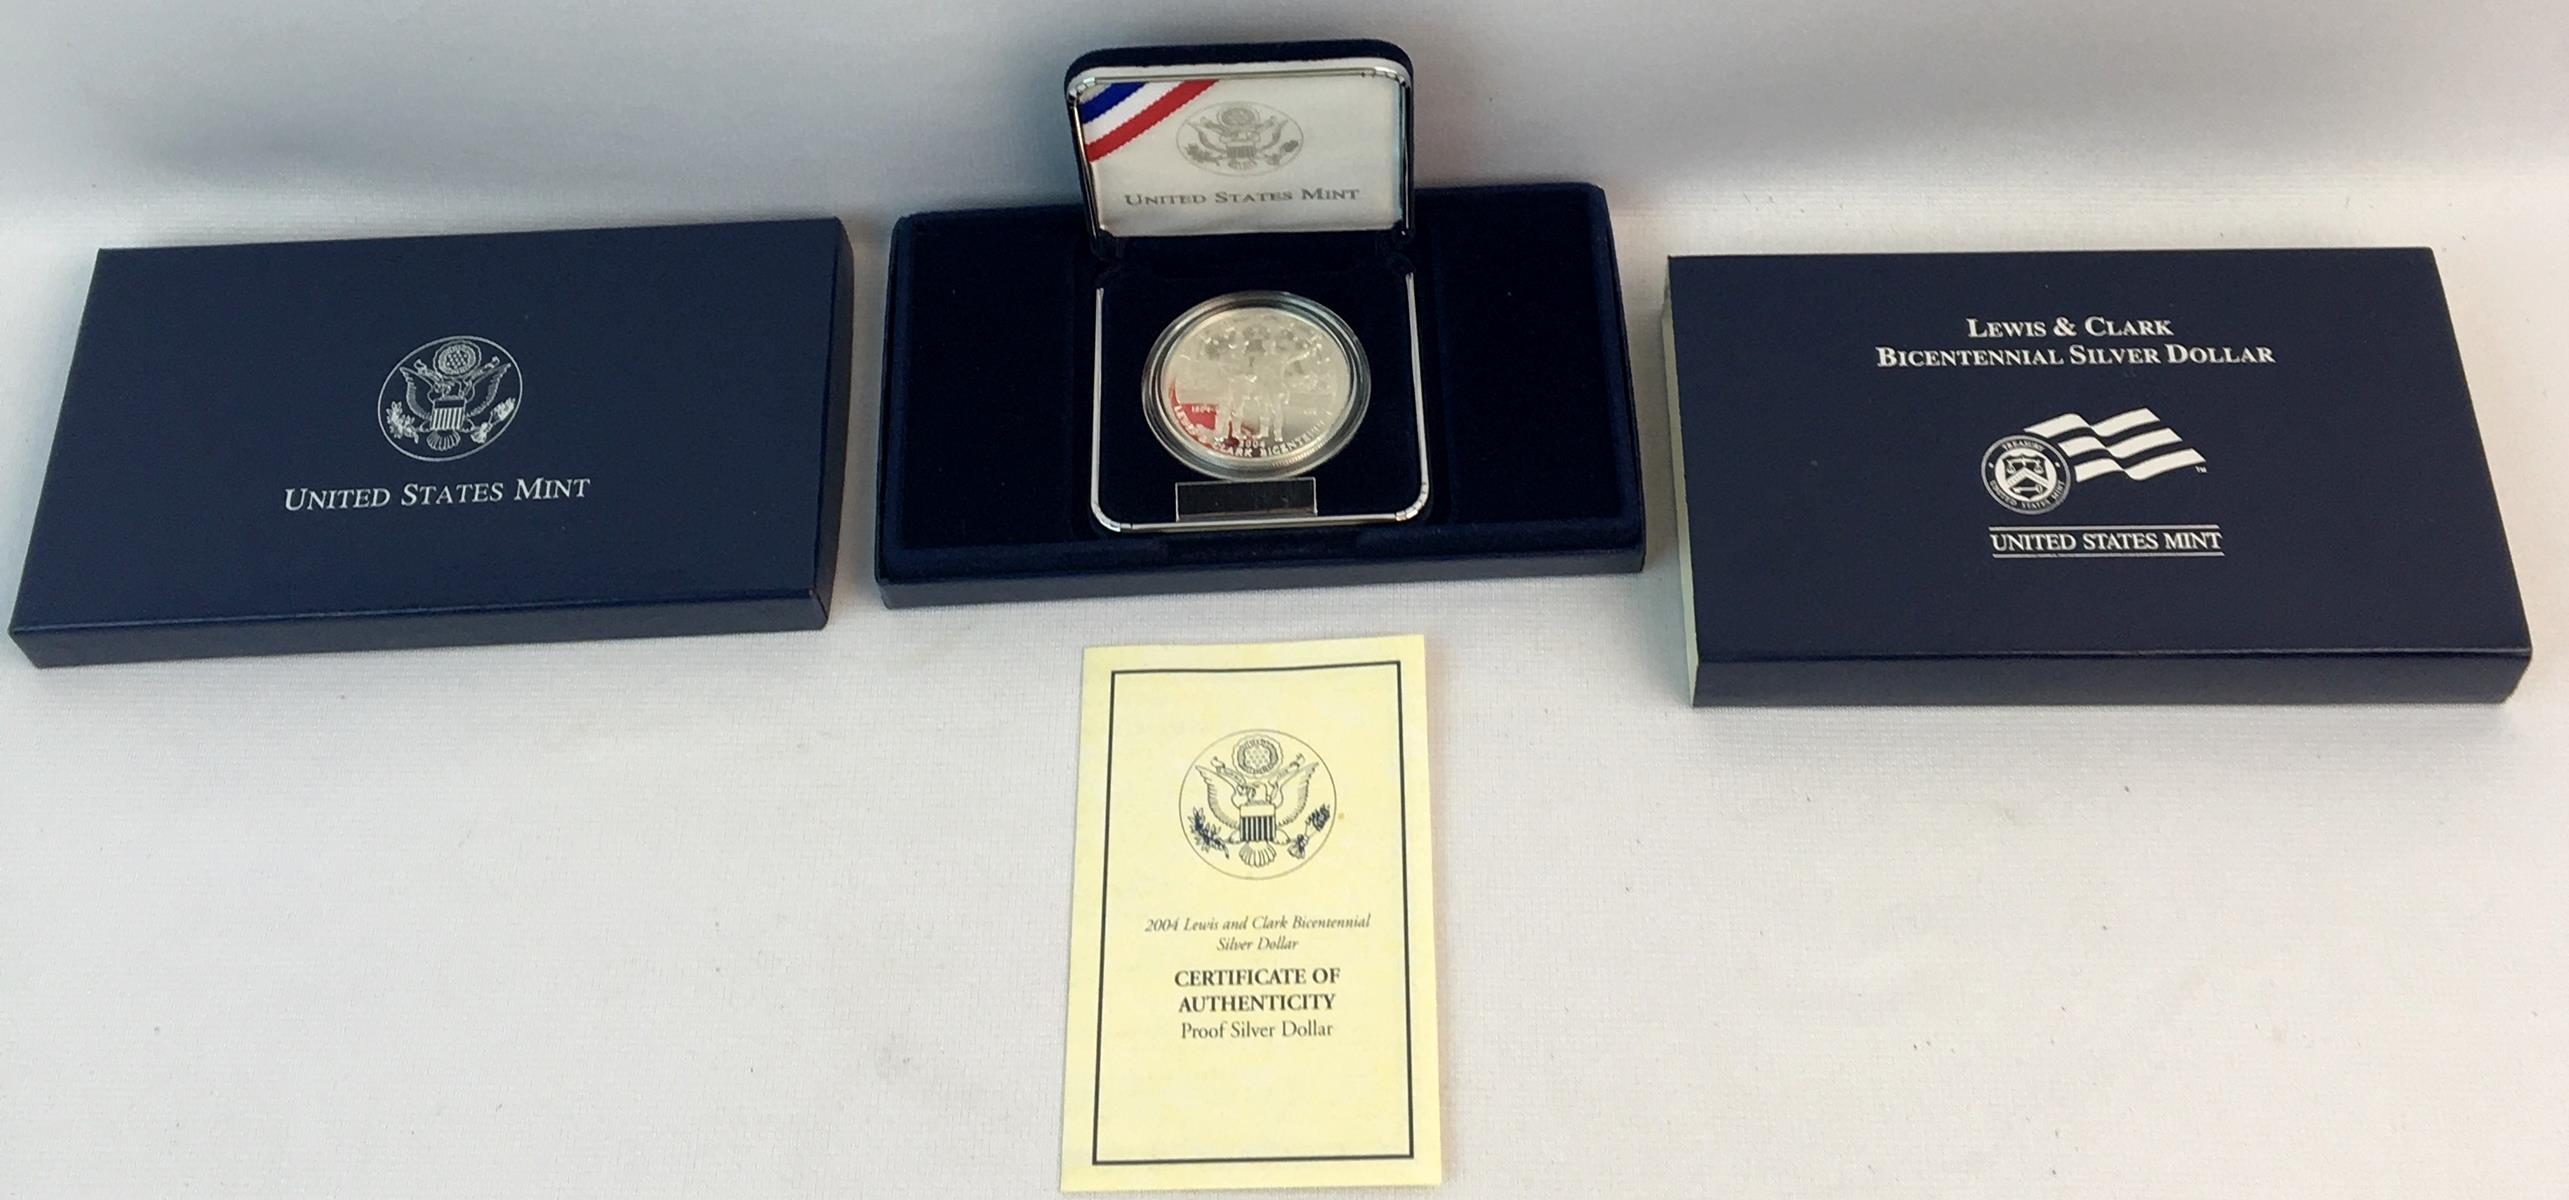 2004 Lewis and Clark Bicentennial Proof Silver Dollar w/ Case and COA